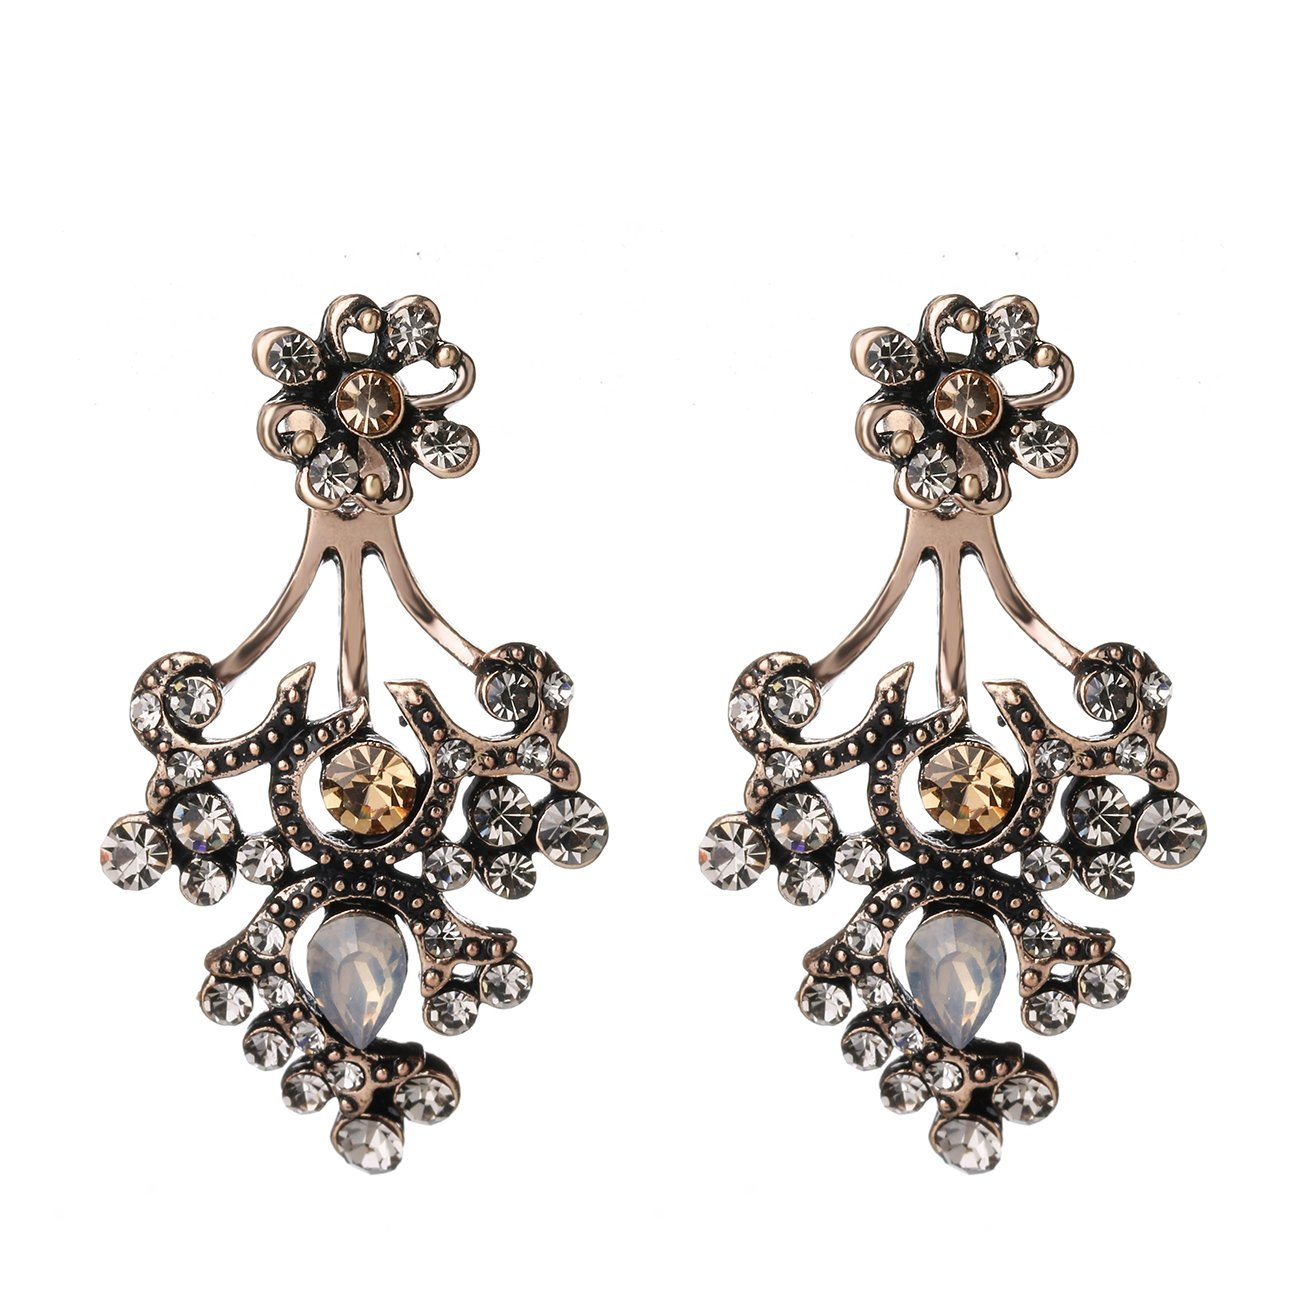 She Lian Vintage Fashion Front Back Rhinestone Stud and Ear Jacket Earrings for Women Mismatch Style (Antique Gold Tone)